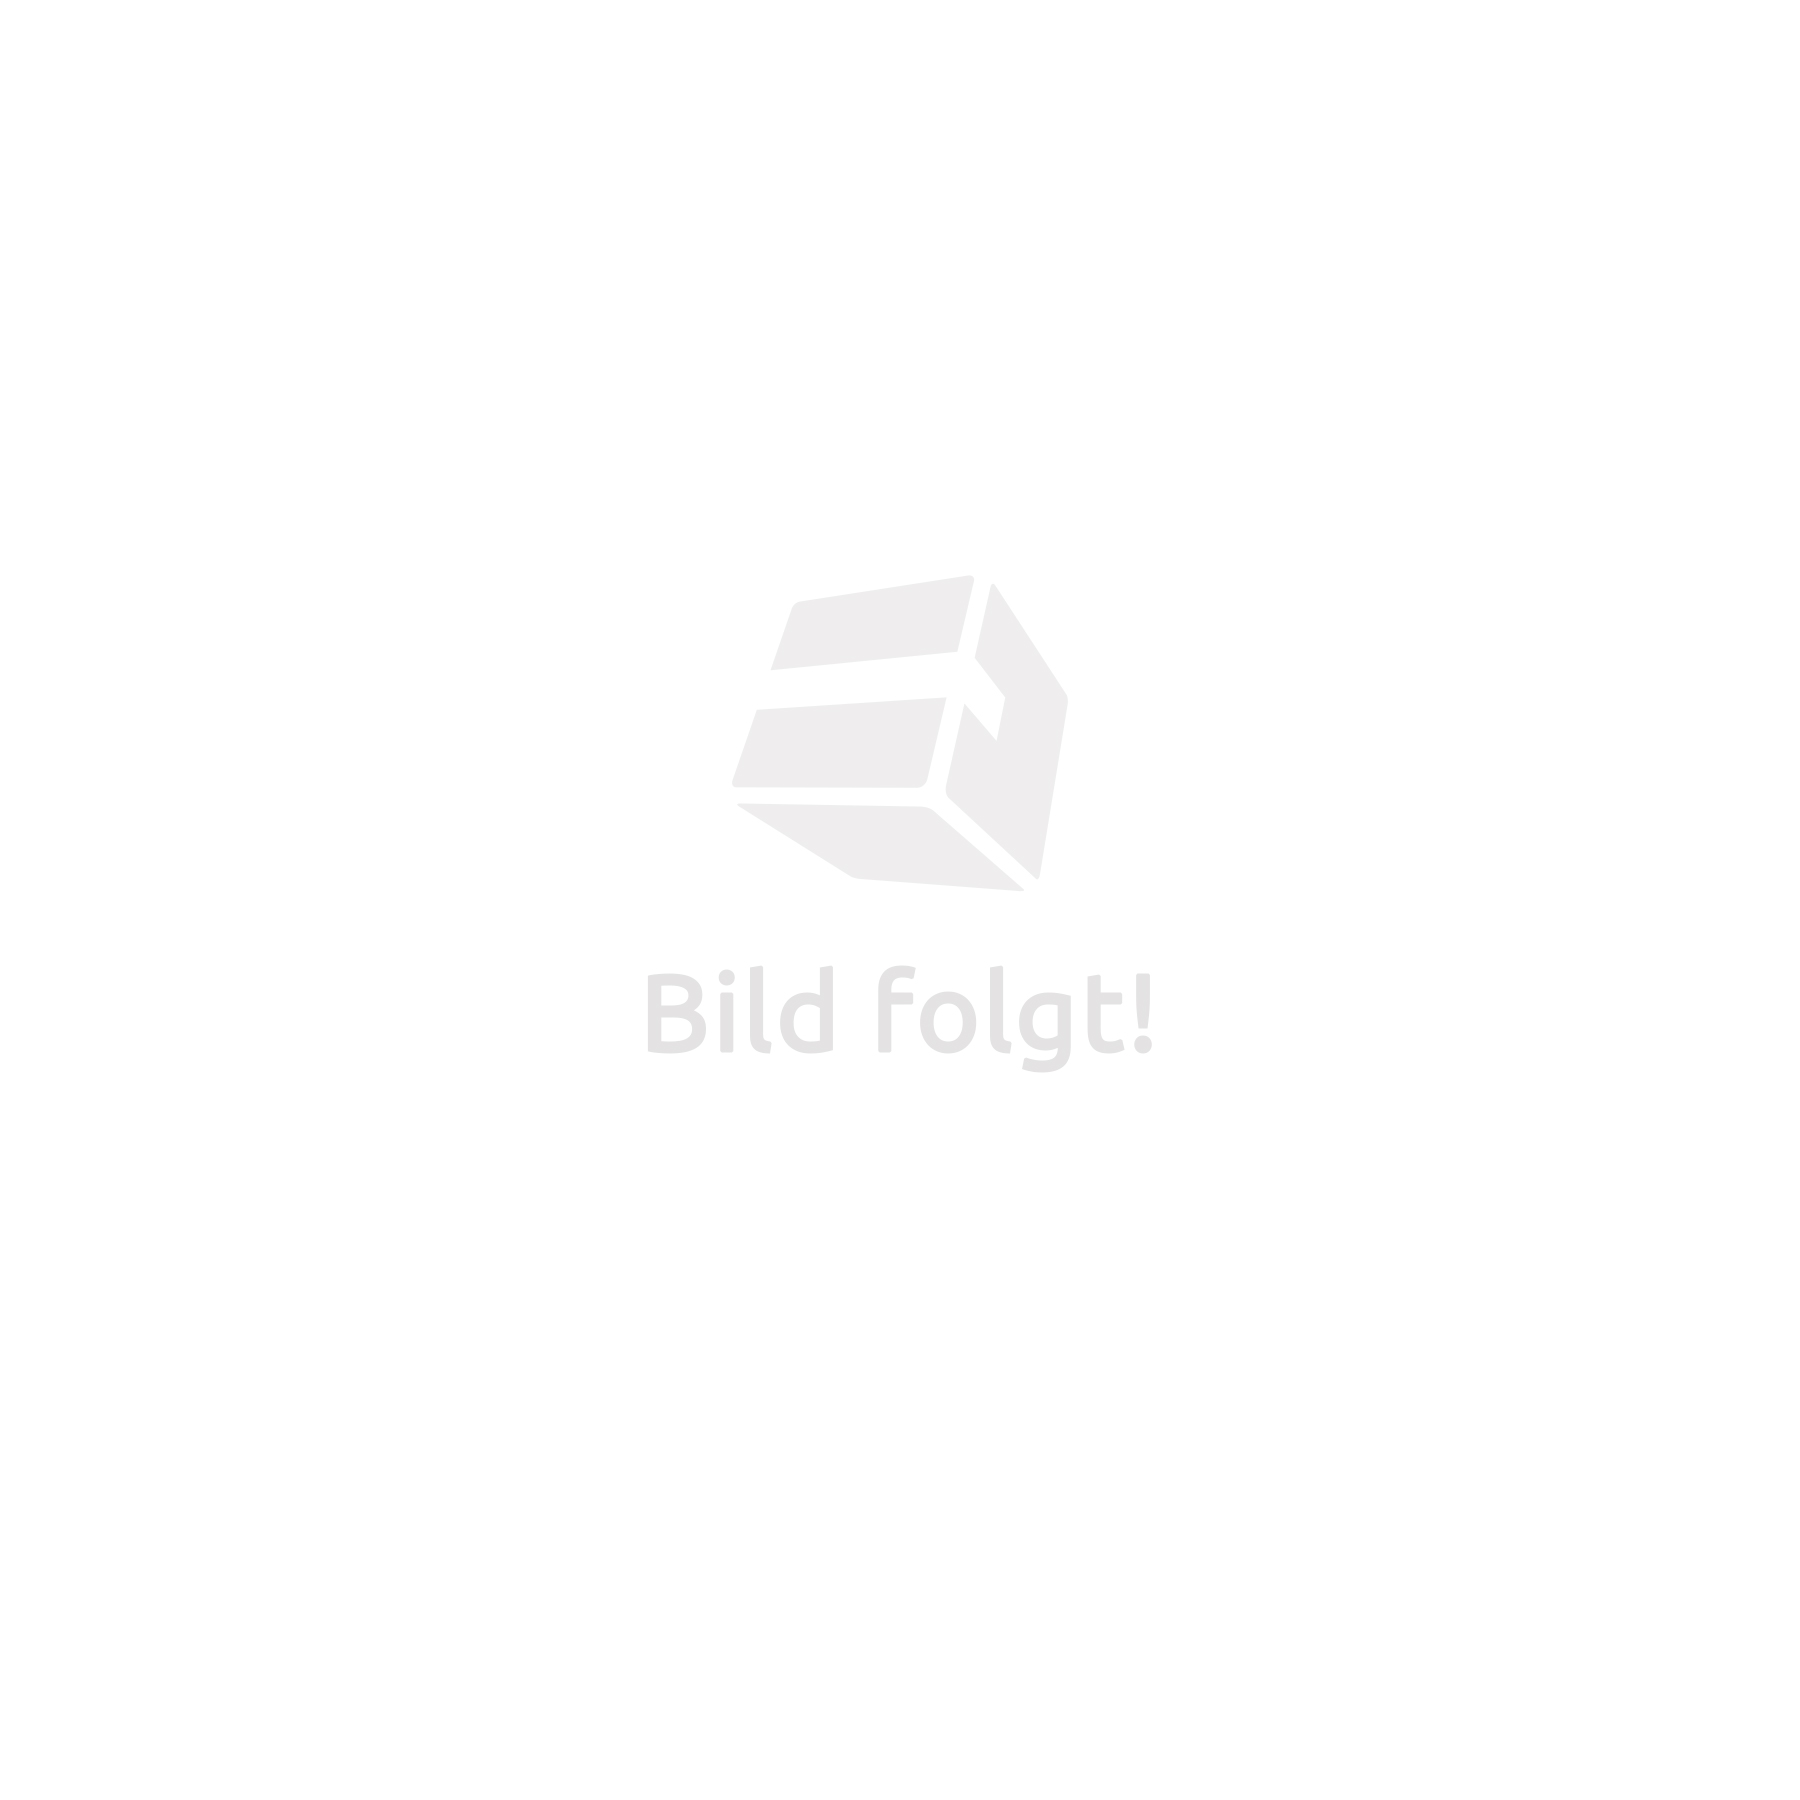 Hundetransportbox single 65 x 90 x 69,5cm